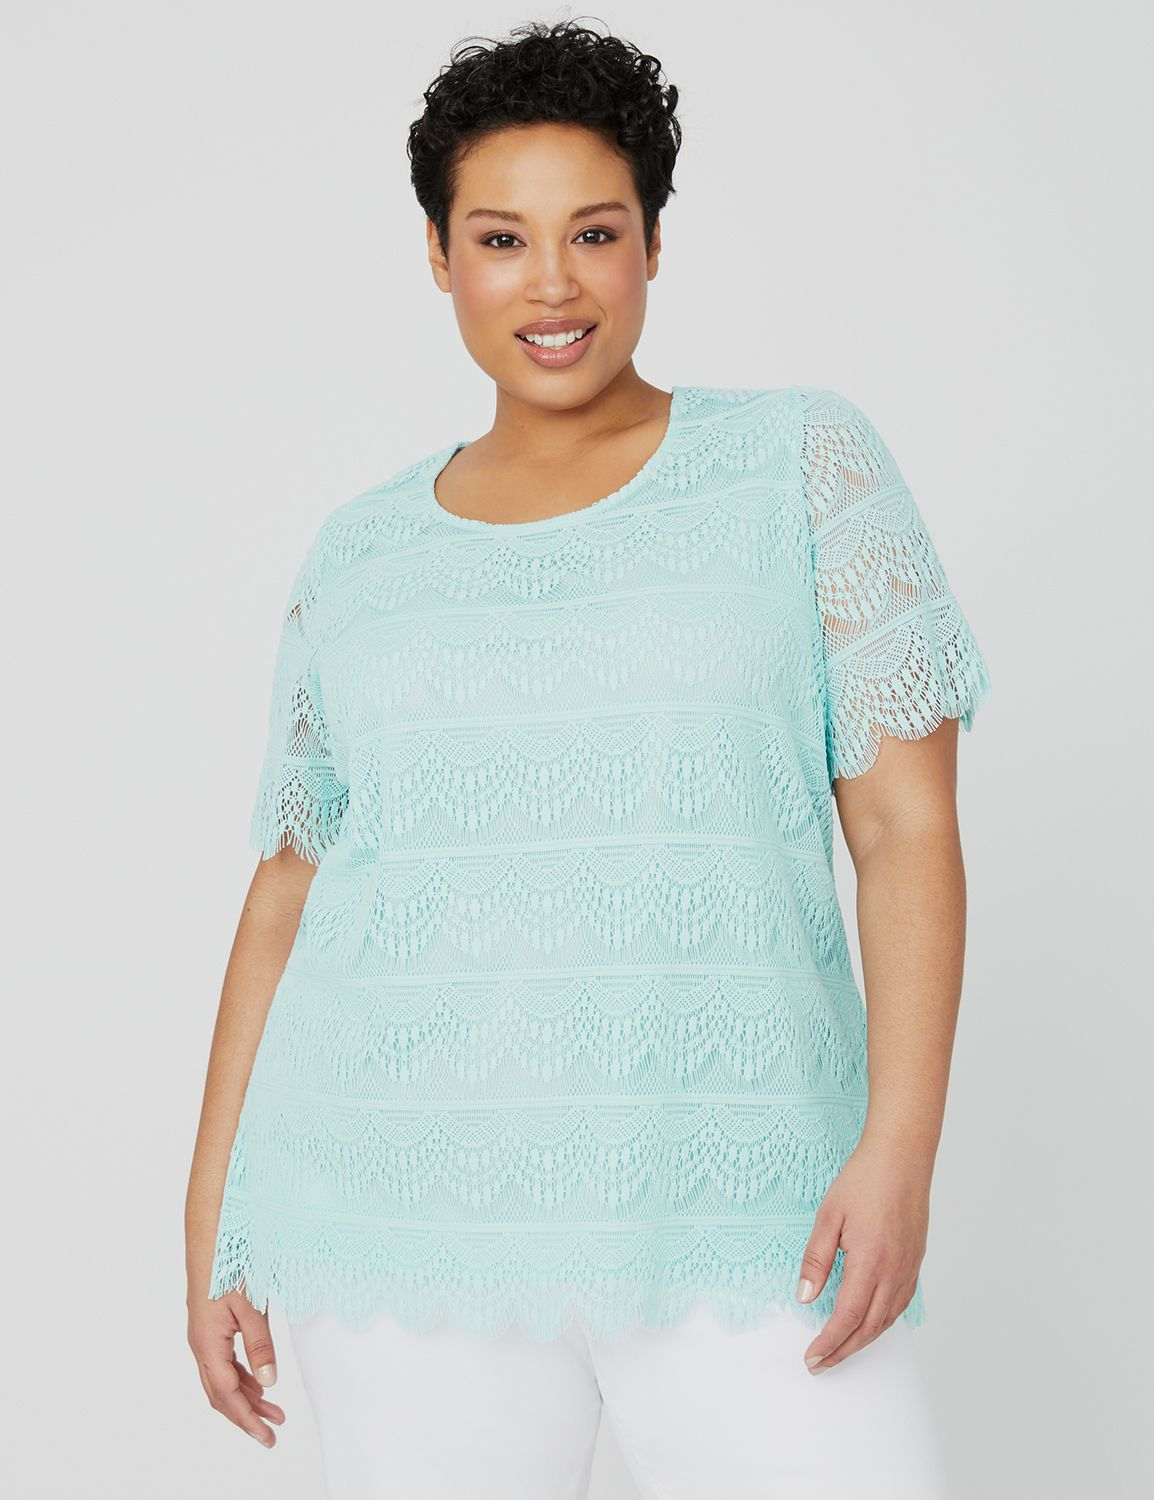 Waves of Lace Top 1087830 SCALLOP EDGE ALLOVER LACE MP-300100104